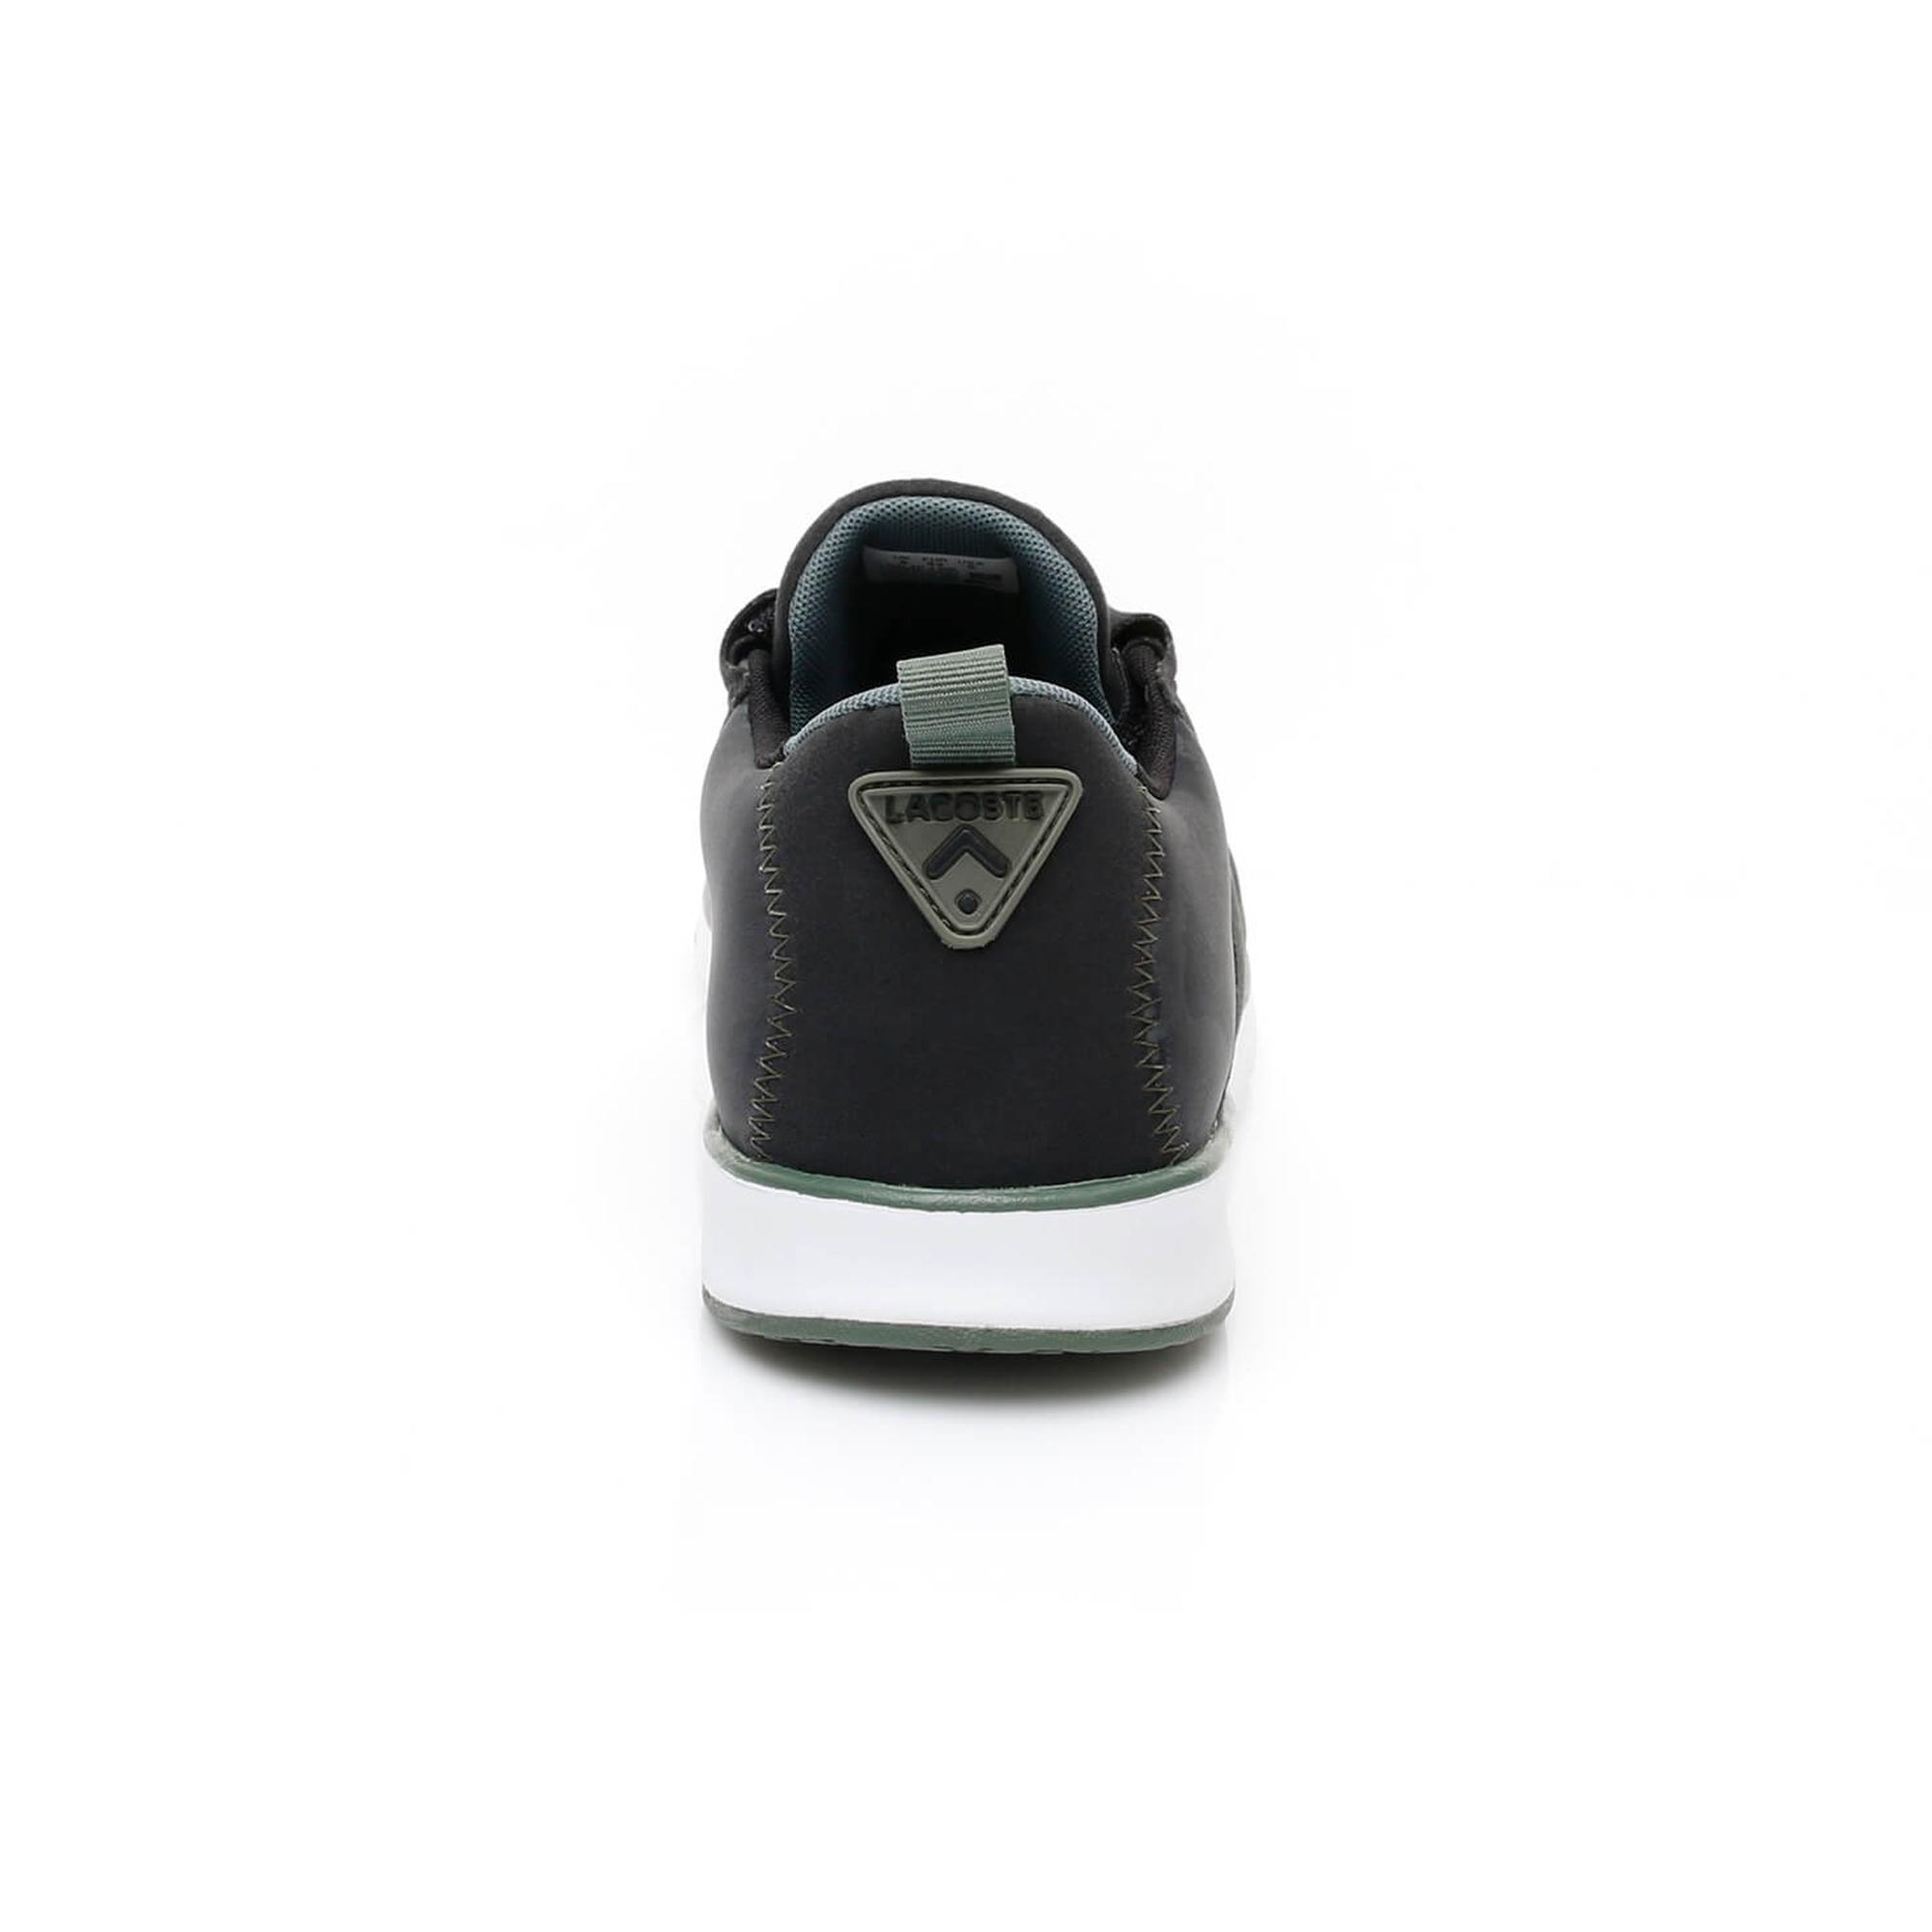 Lacoste Men's Light Sneakers